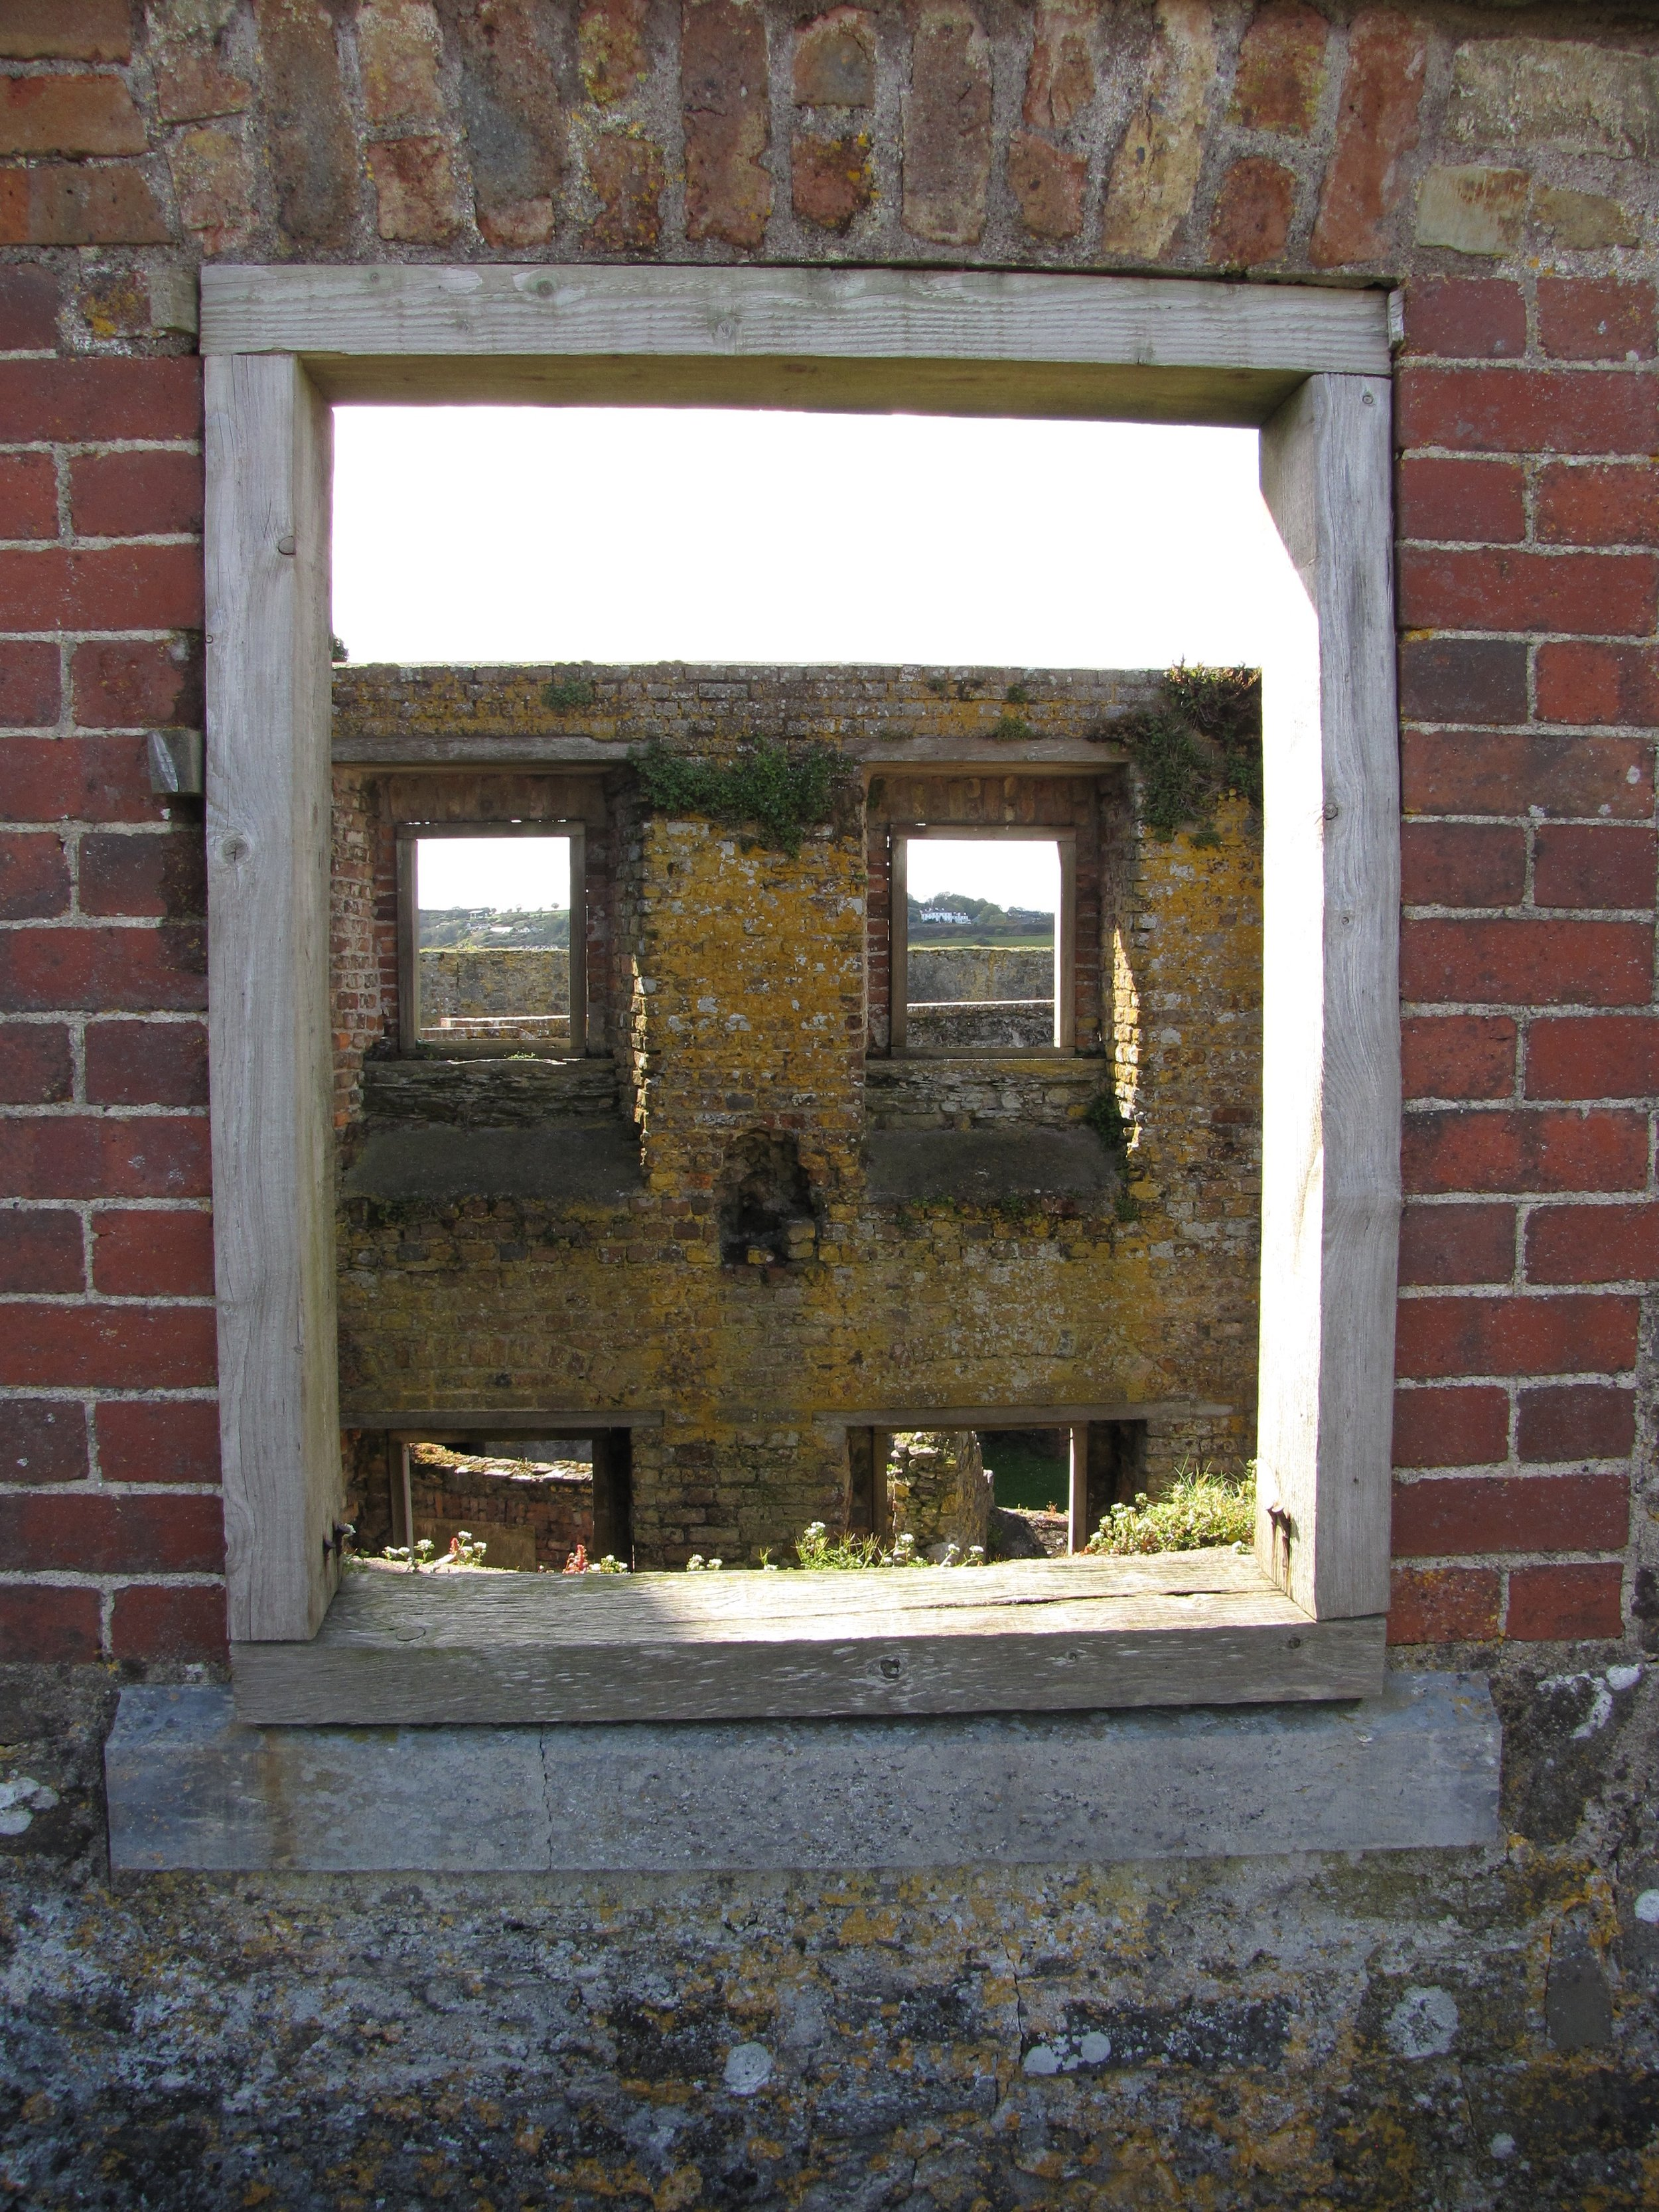 Ireland Building Through Brick Window.jpg